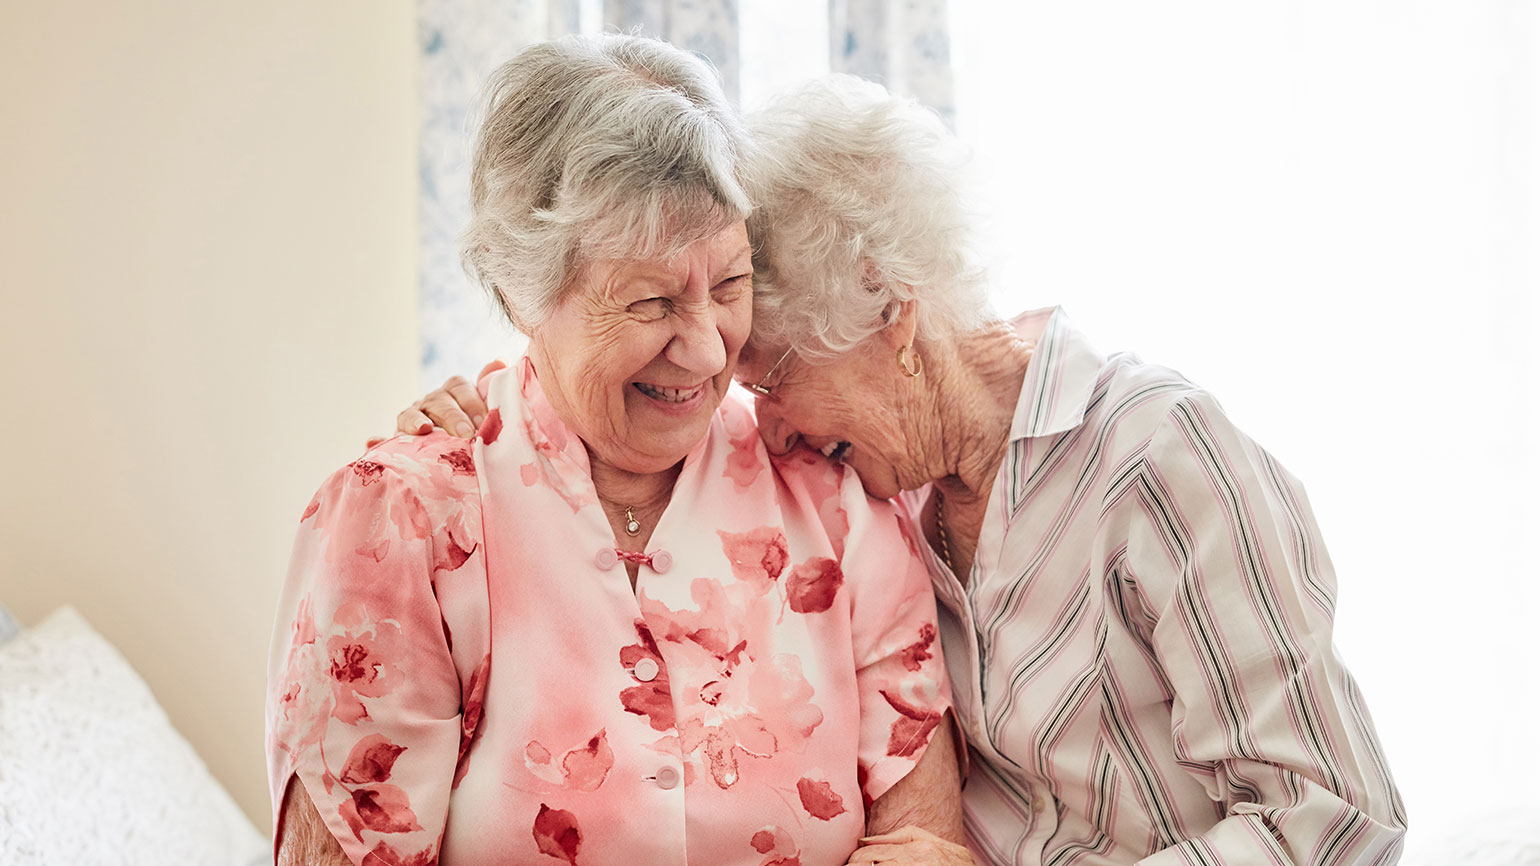 Two senior women forget their differences and laugh together